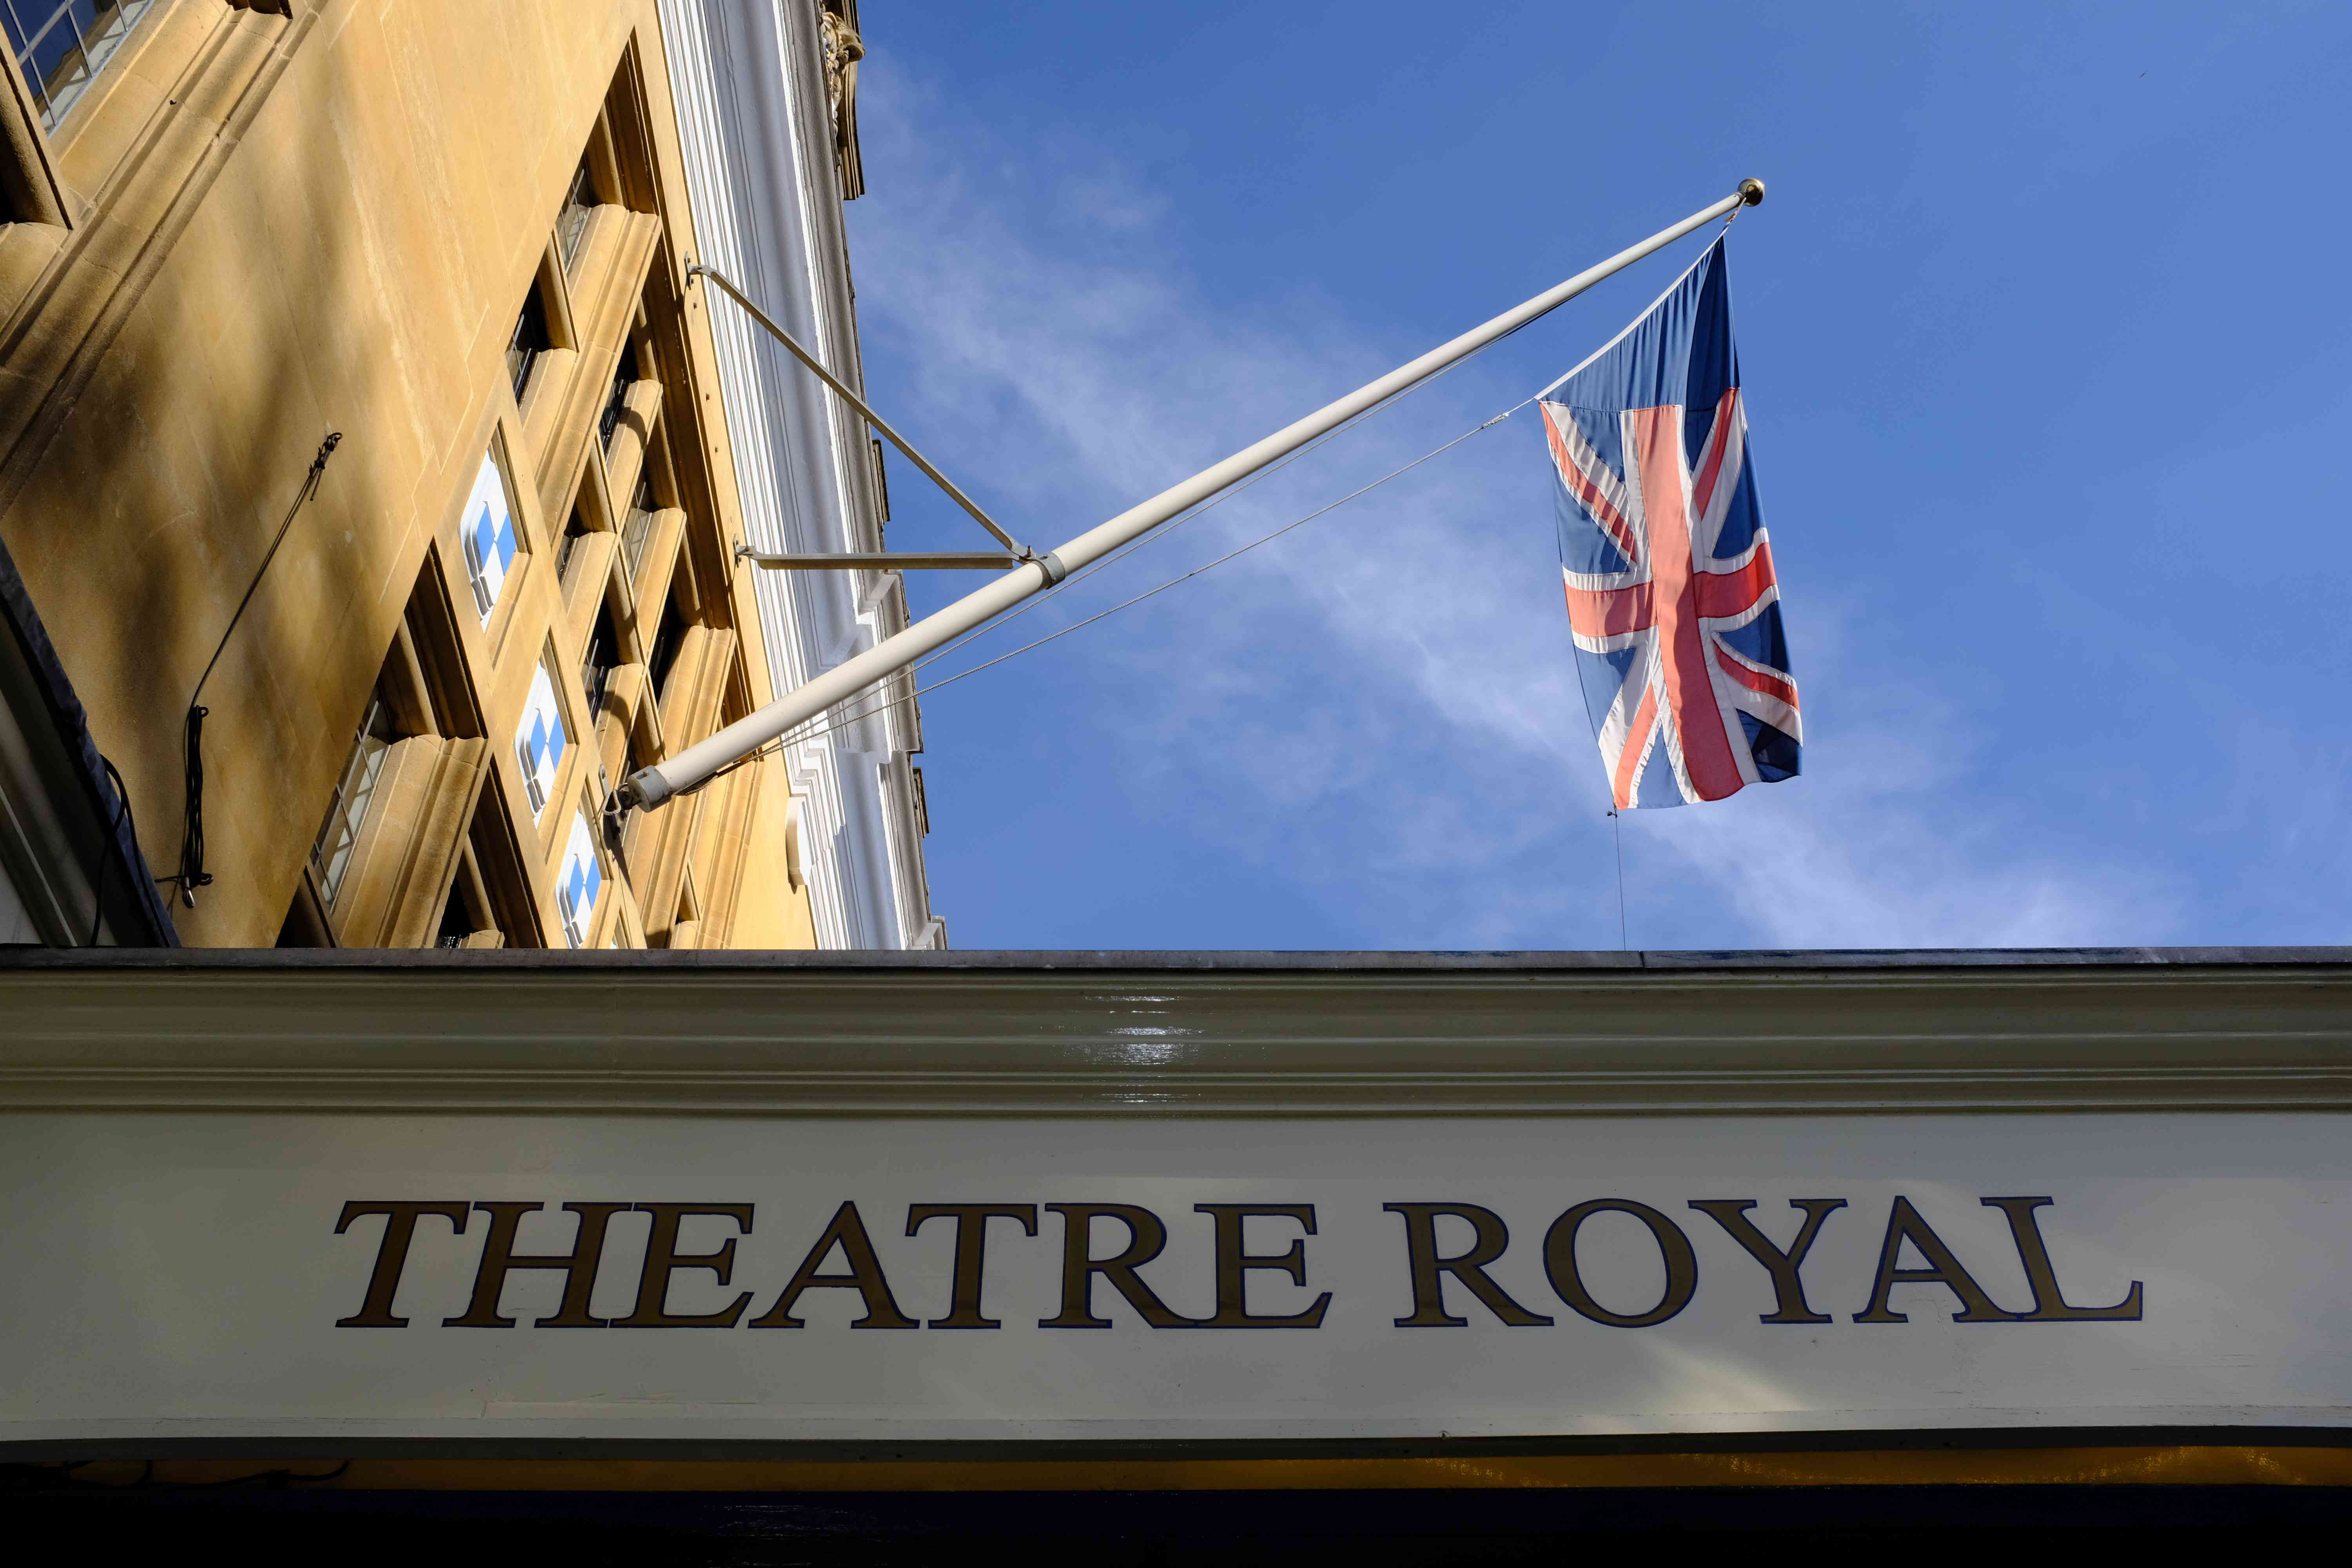 Detail of the exterior of the Theatre Royal Windsor, with its entrance canopy and flagpole with the Union Jack flag, in Windsor, England, on a bright autumn afternoon